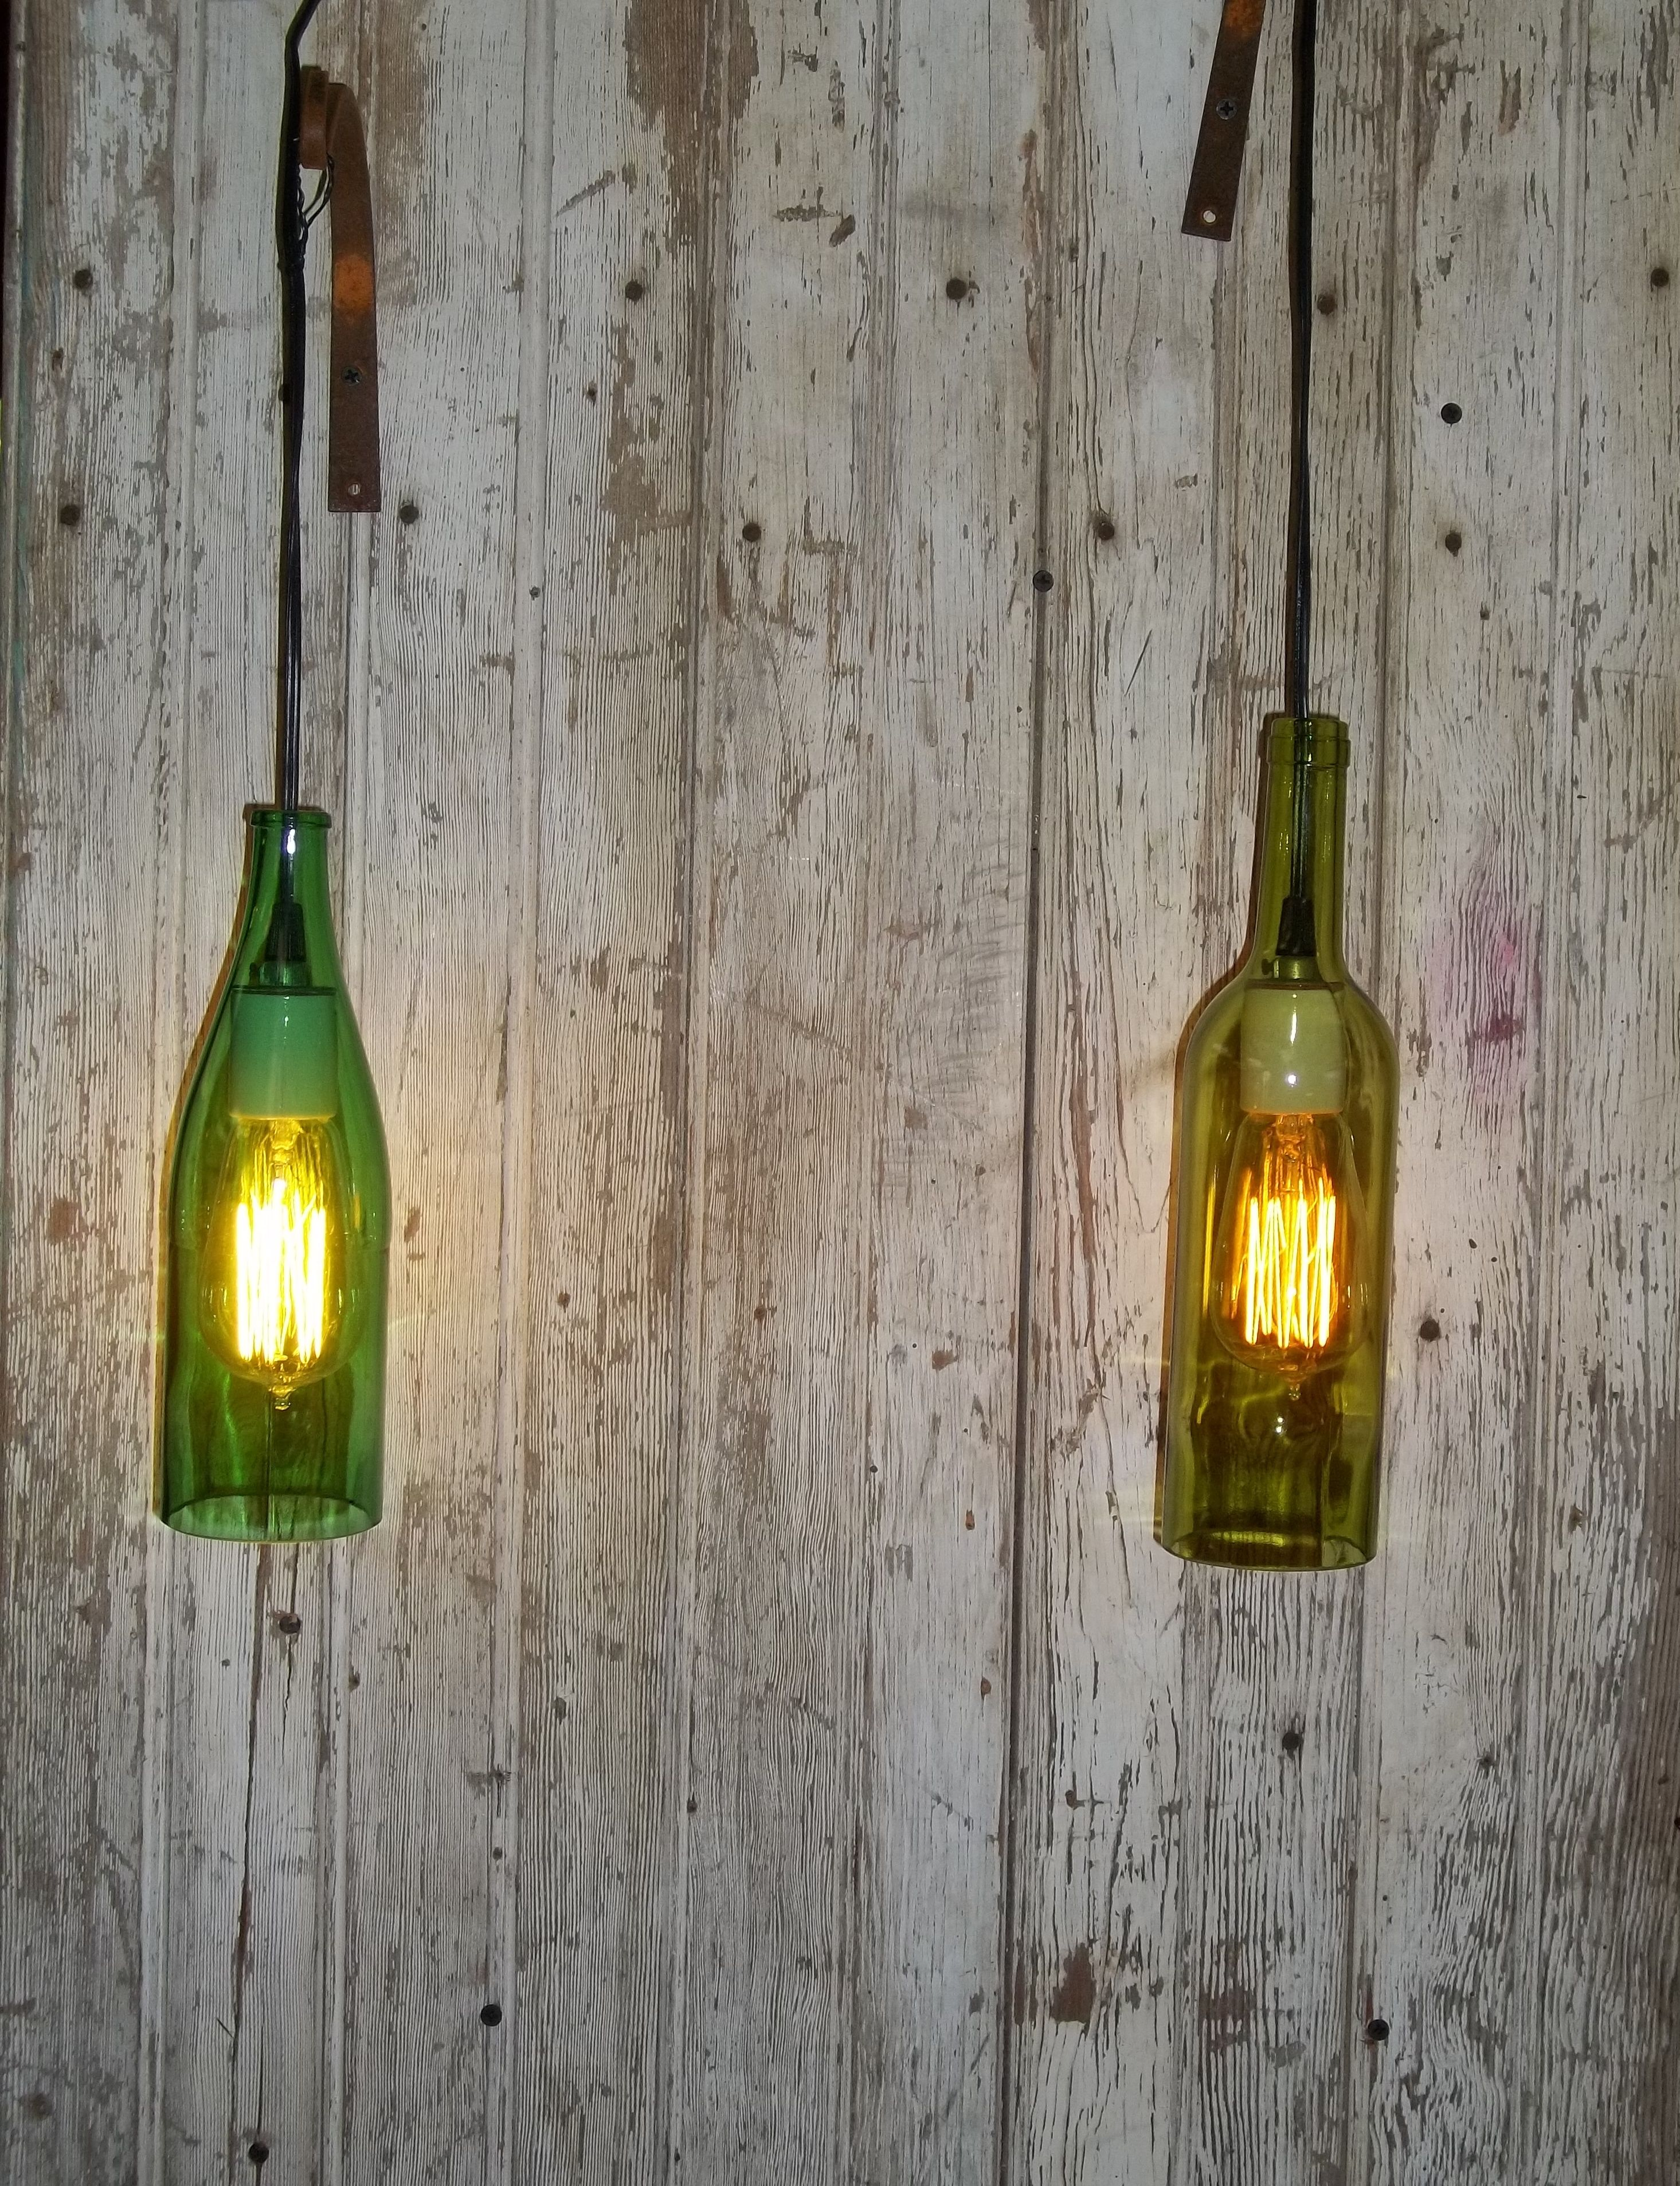 Wine Bottle Light Fixture Wine Bottle Light Fixture With Edison Light Bulb Mostly Just